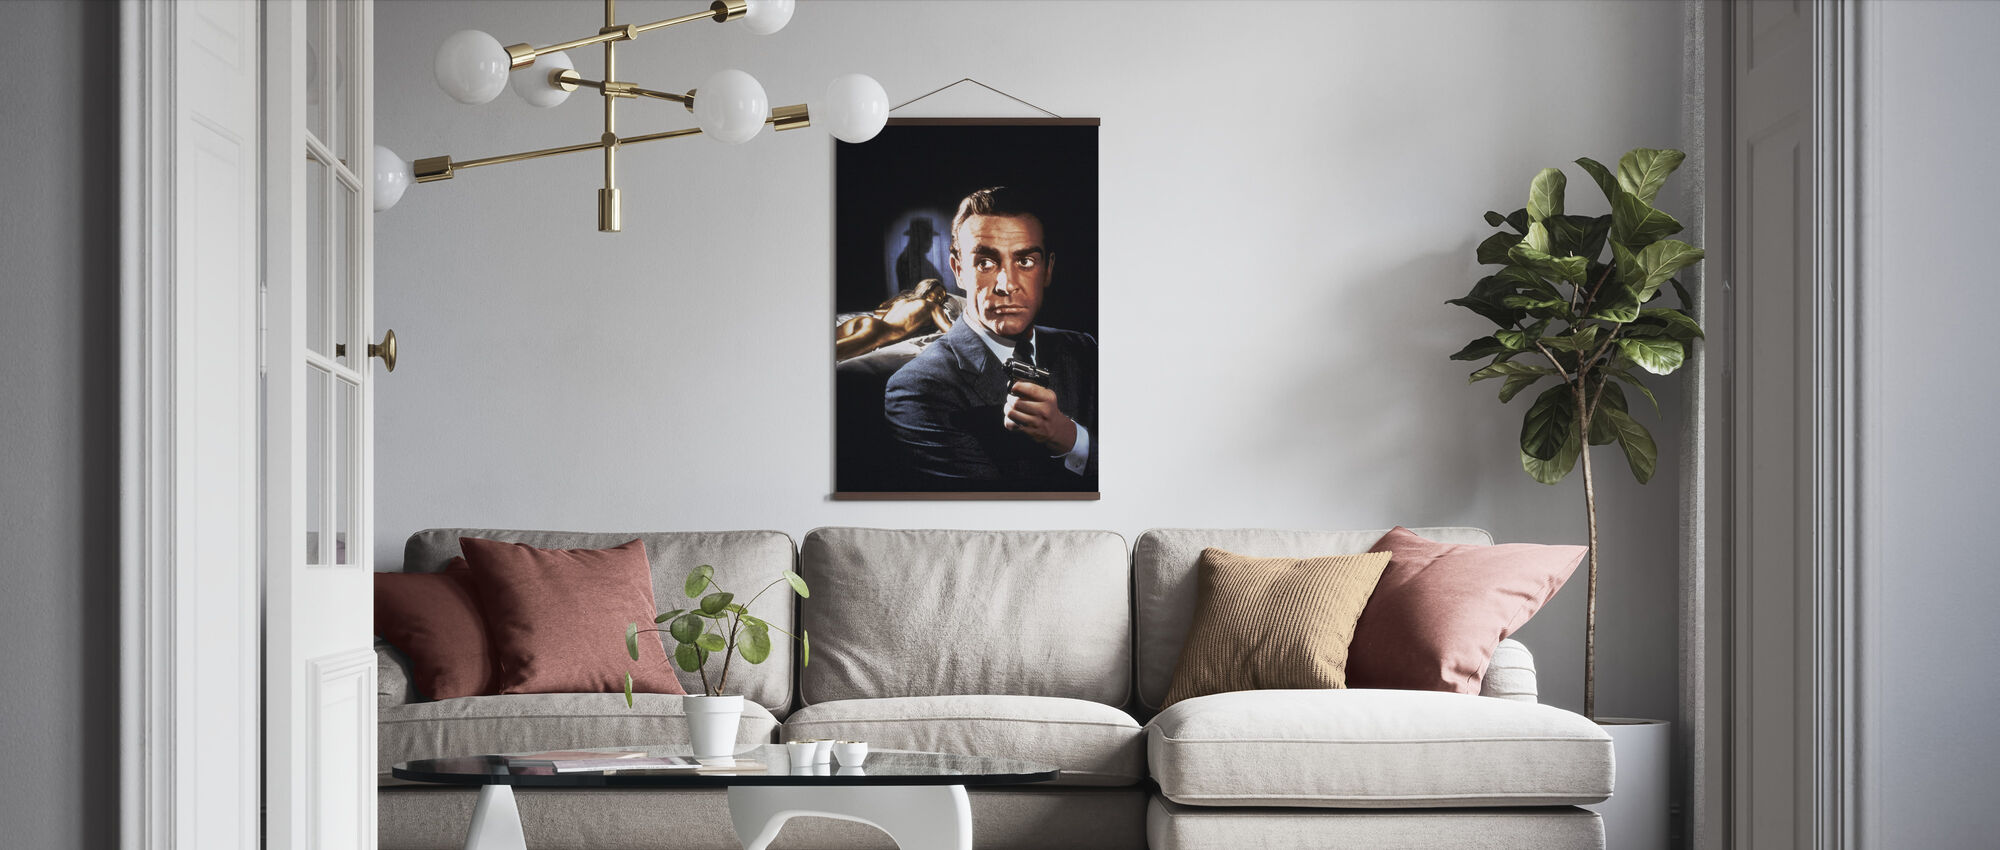 Sean Connery in 007 Goldfinger - Poster - Wohnzimmer